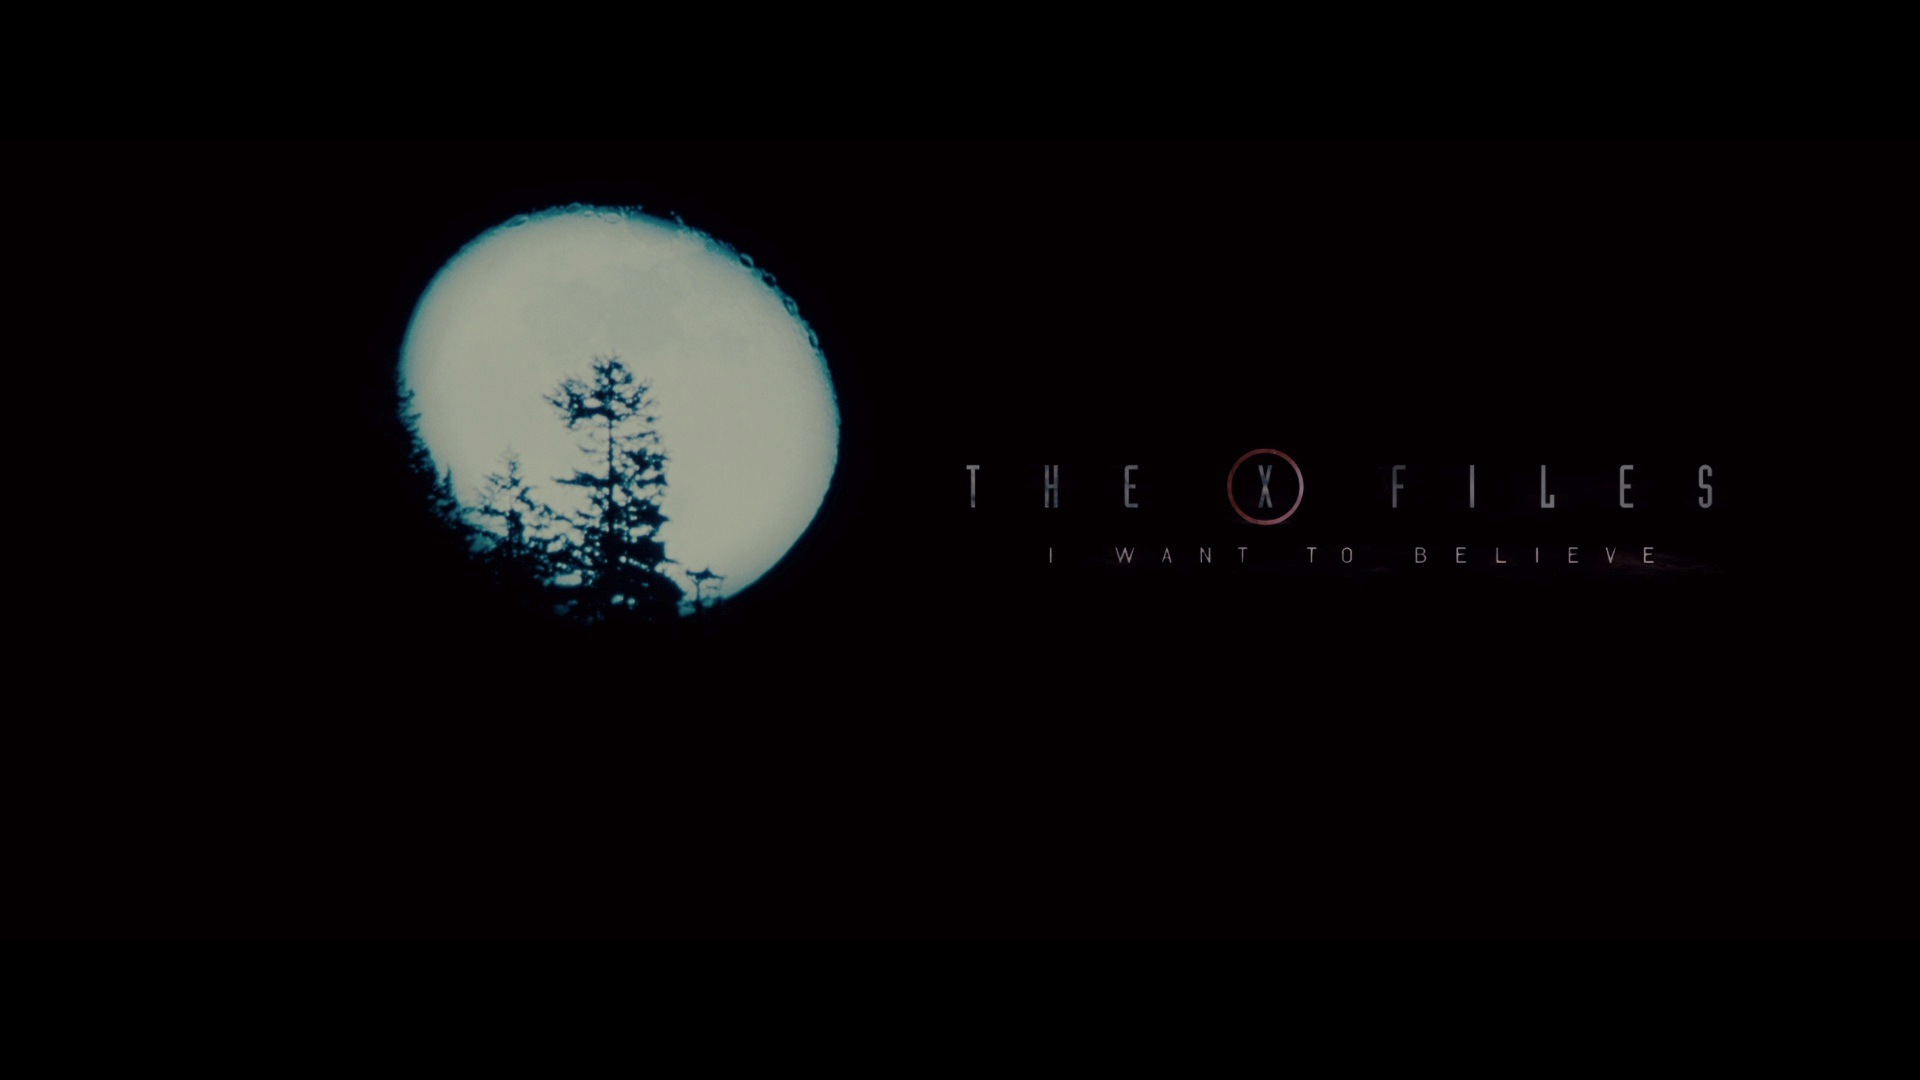 Displaying 6 Images For   X Files Wallpaper I Want To Believe 1920x1080